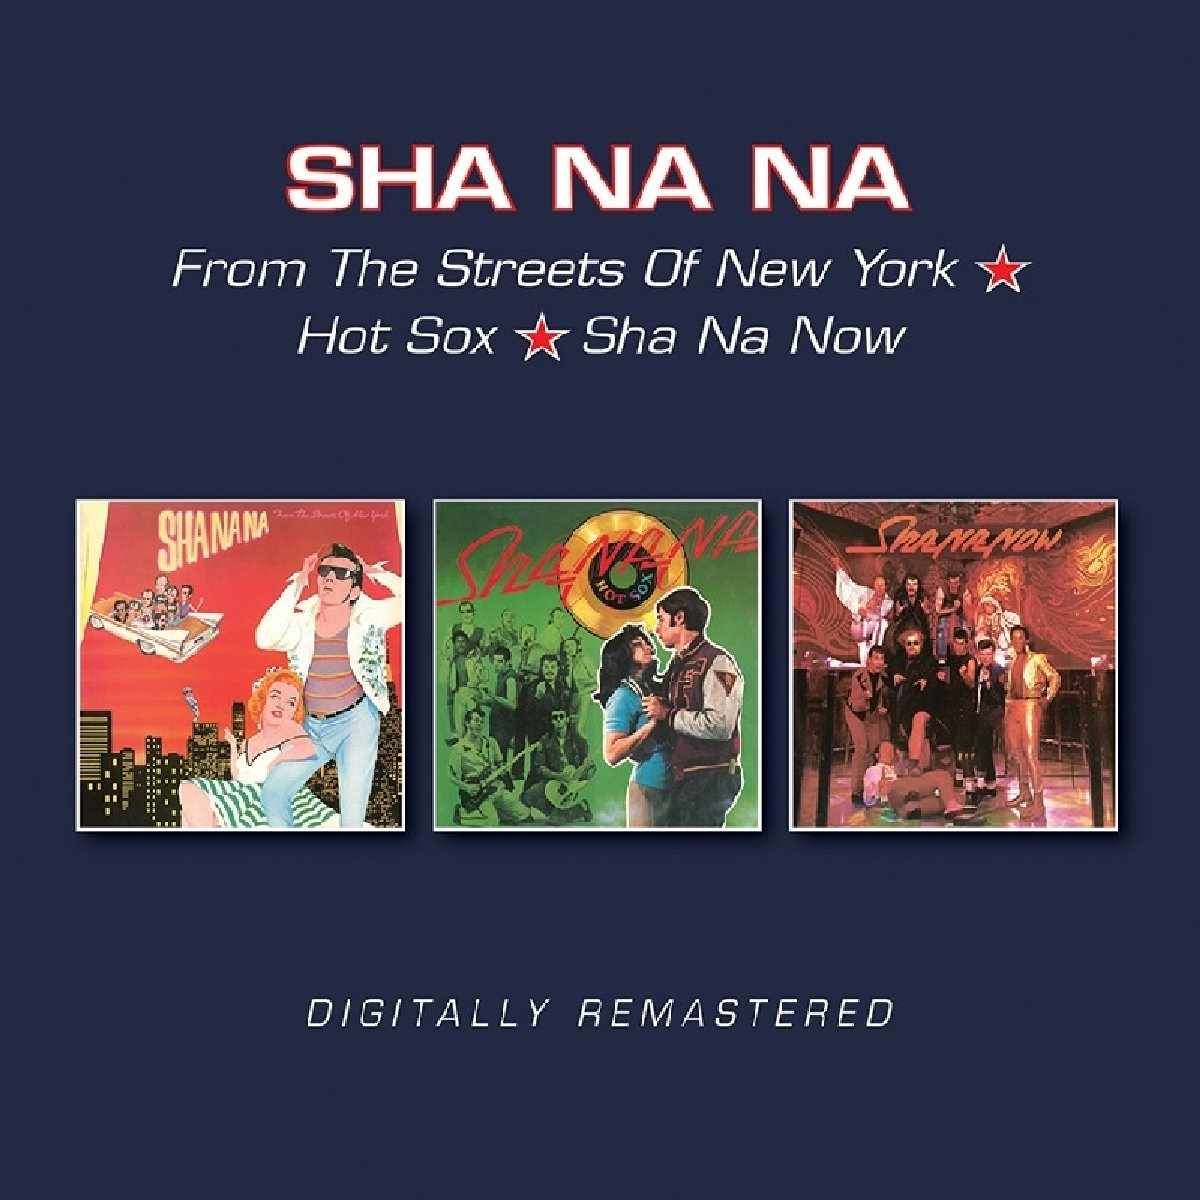 From The Streets Of New York Hot Sox Sha Na Now